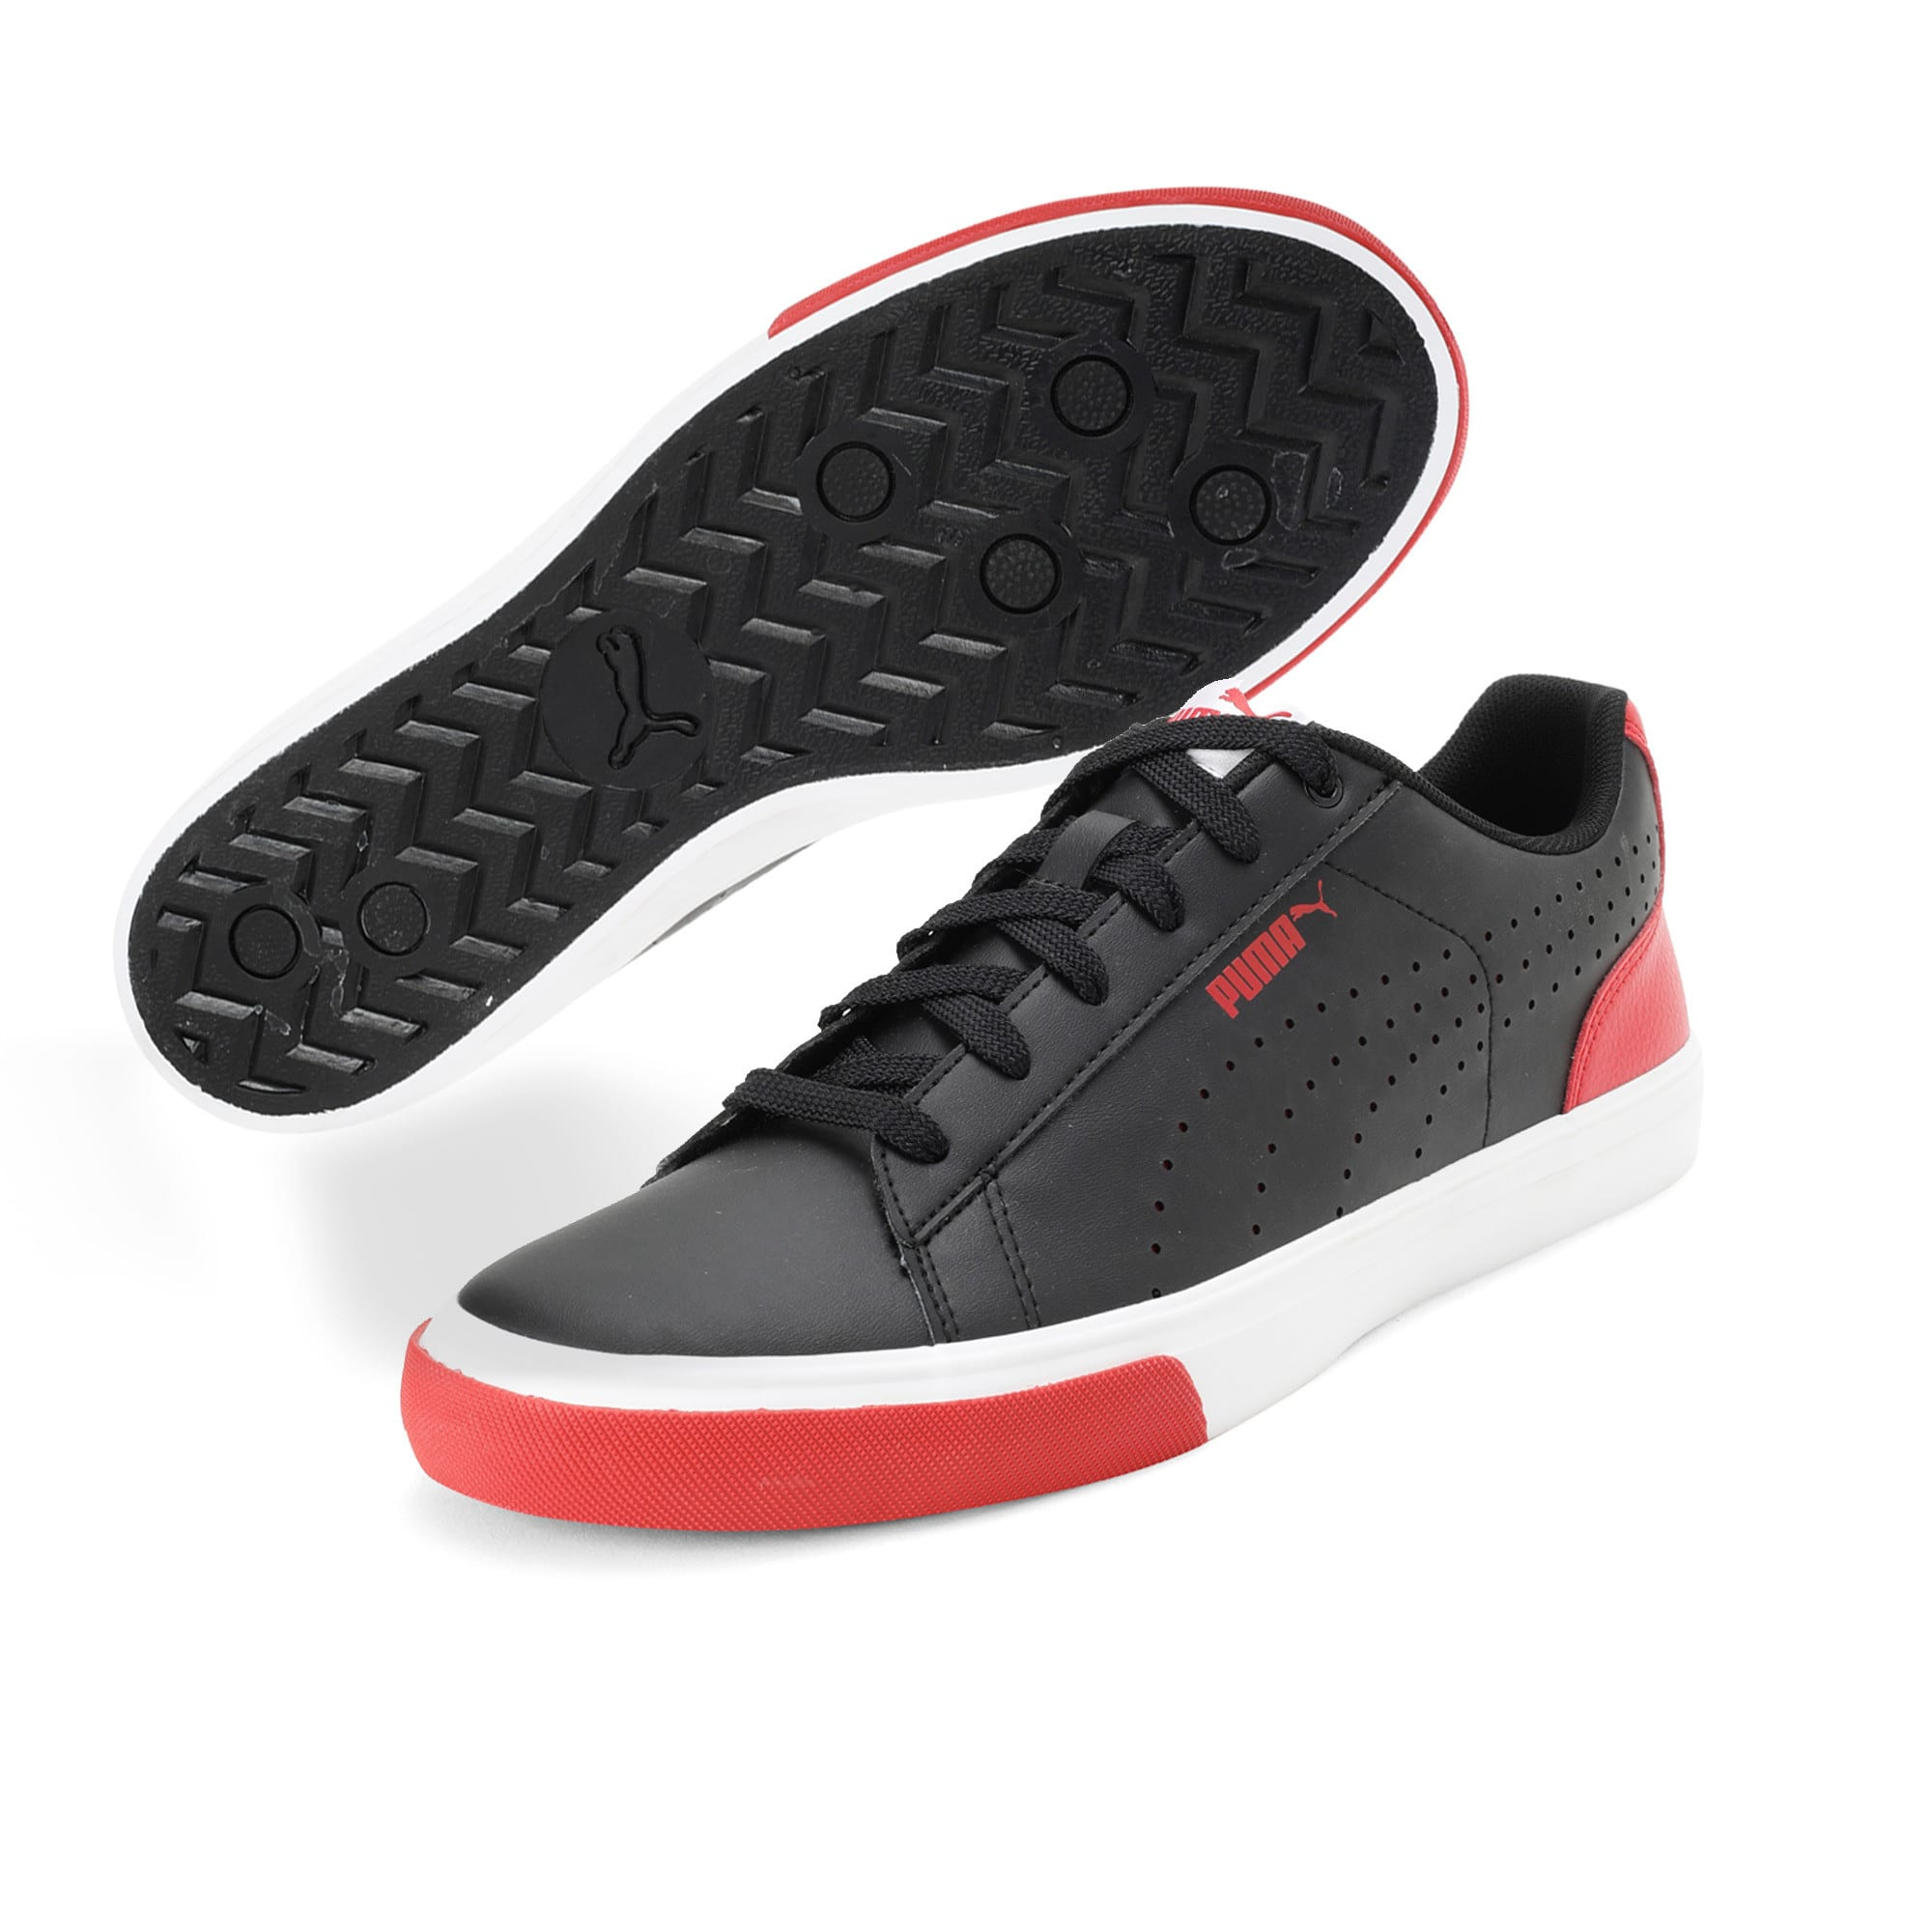 Thumbnail 6 of Flight X 2 IDP, Puma Black-High Risk Red, medium-IND